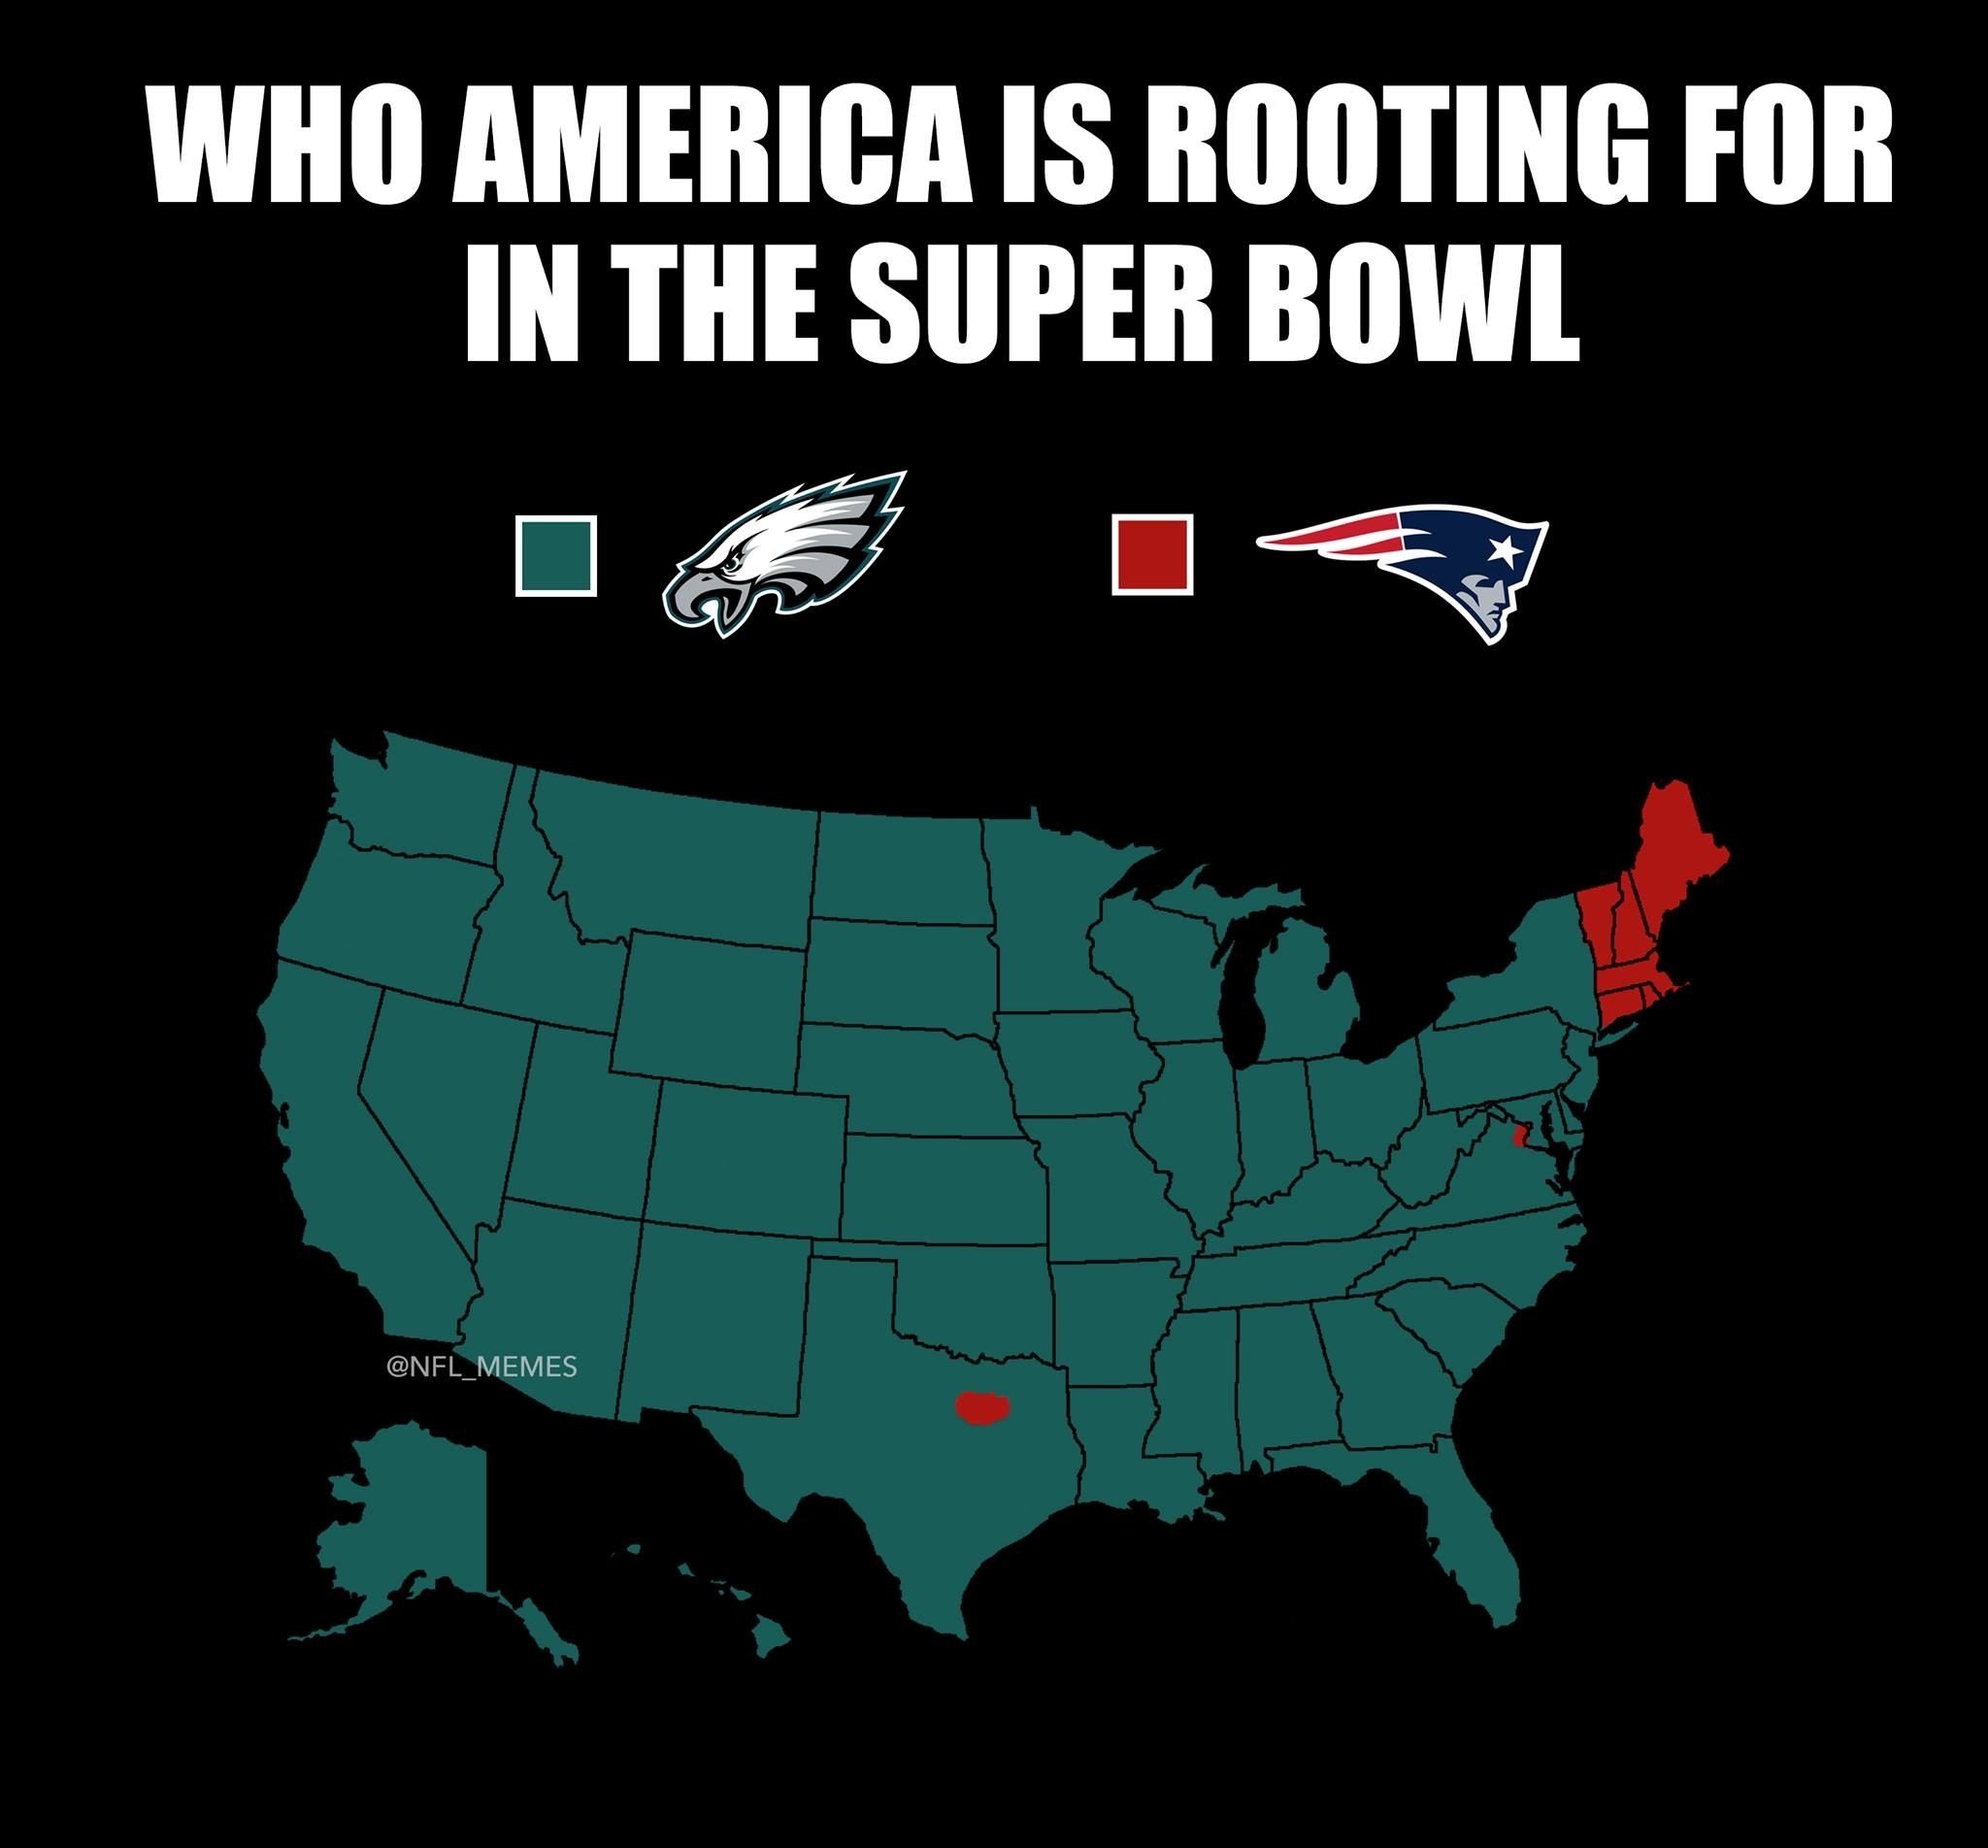 10 Funny American Football Pictures That You Must See Before within Super Bowl 2019 Map Meme